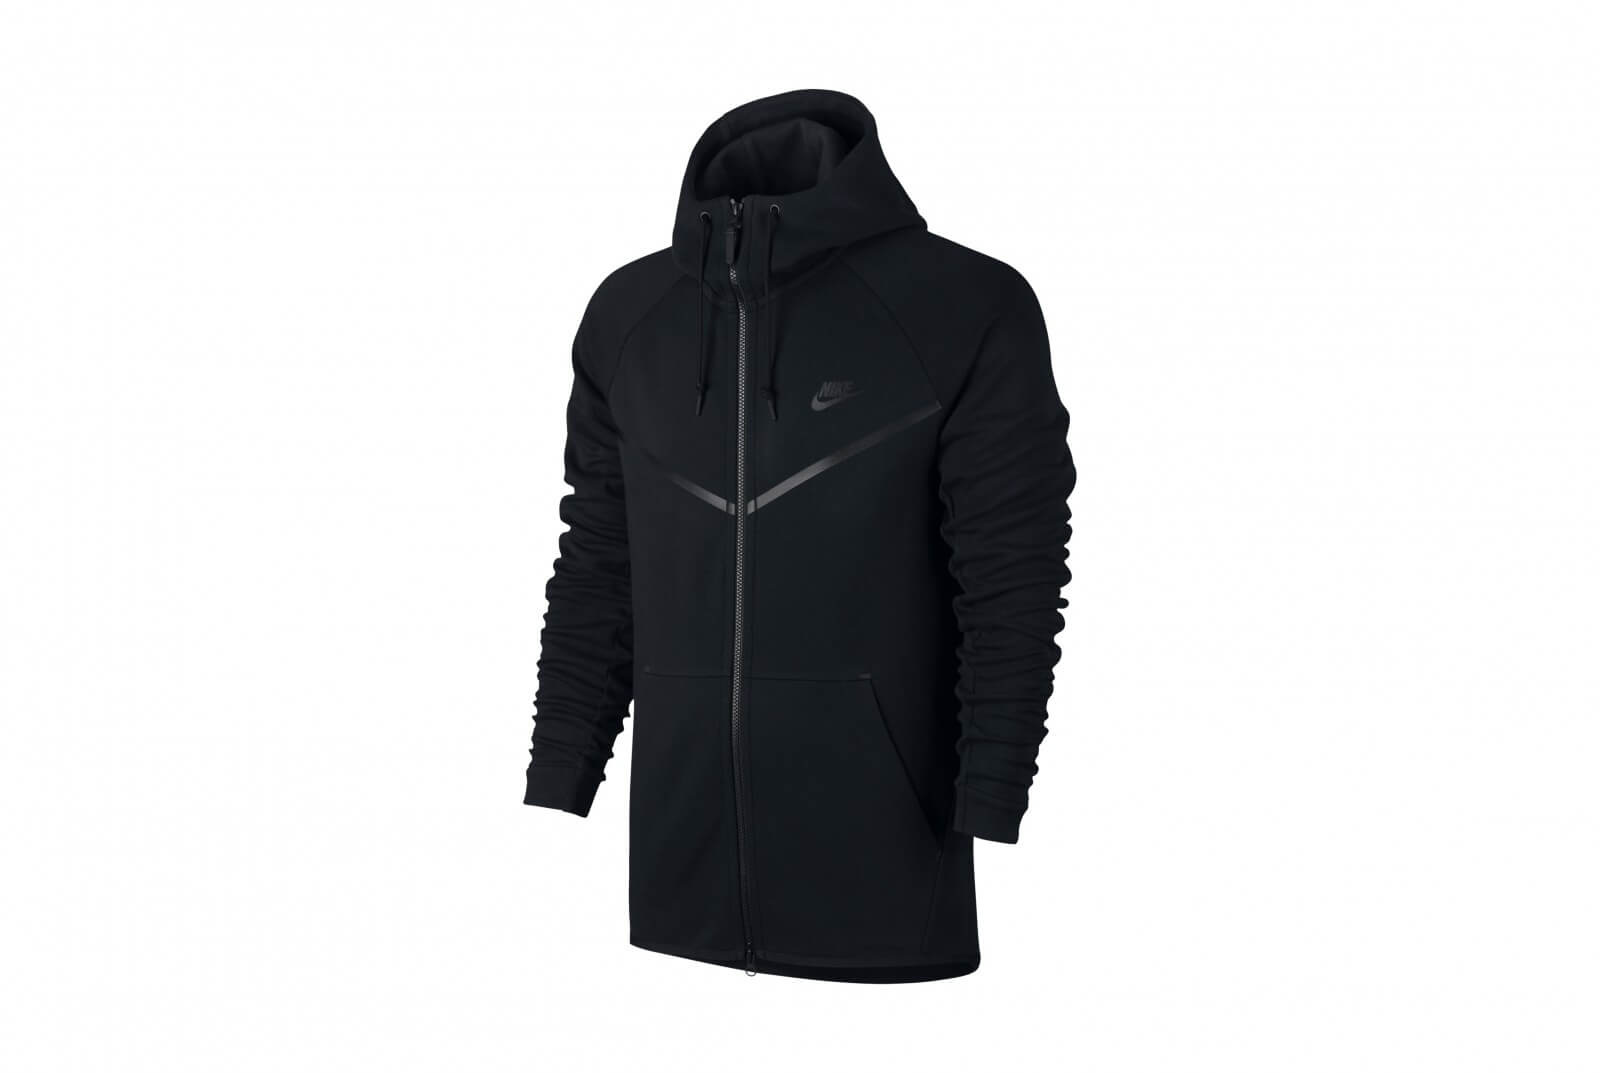 Nike Pulli Männer Nike Tech Fleece Windrunner Hoodie Schwarz Burned Sports